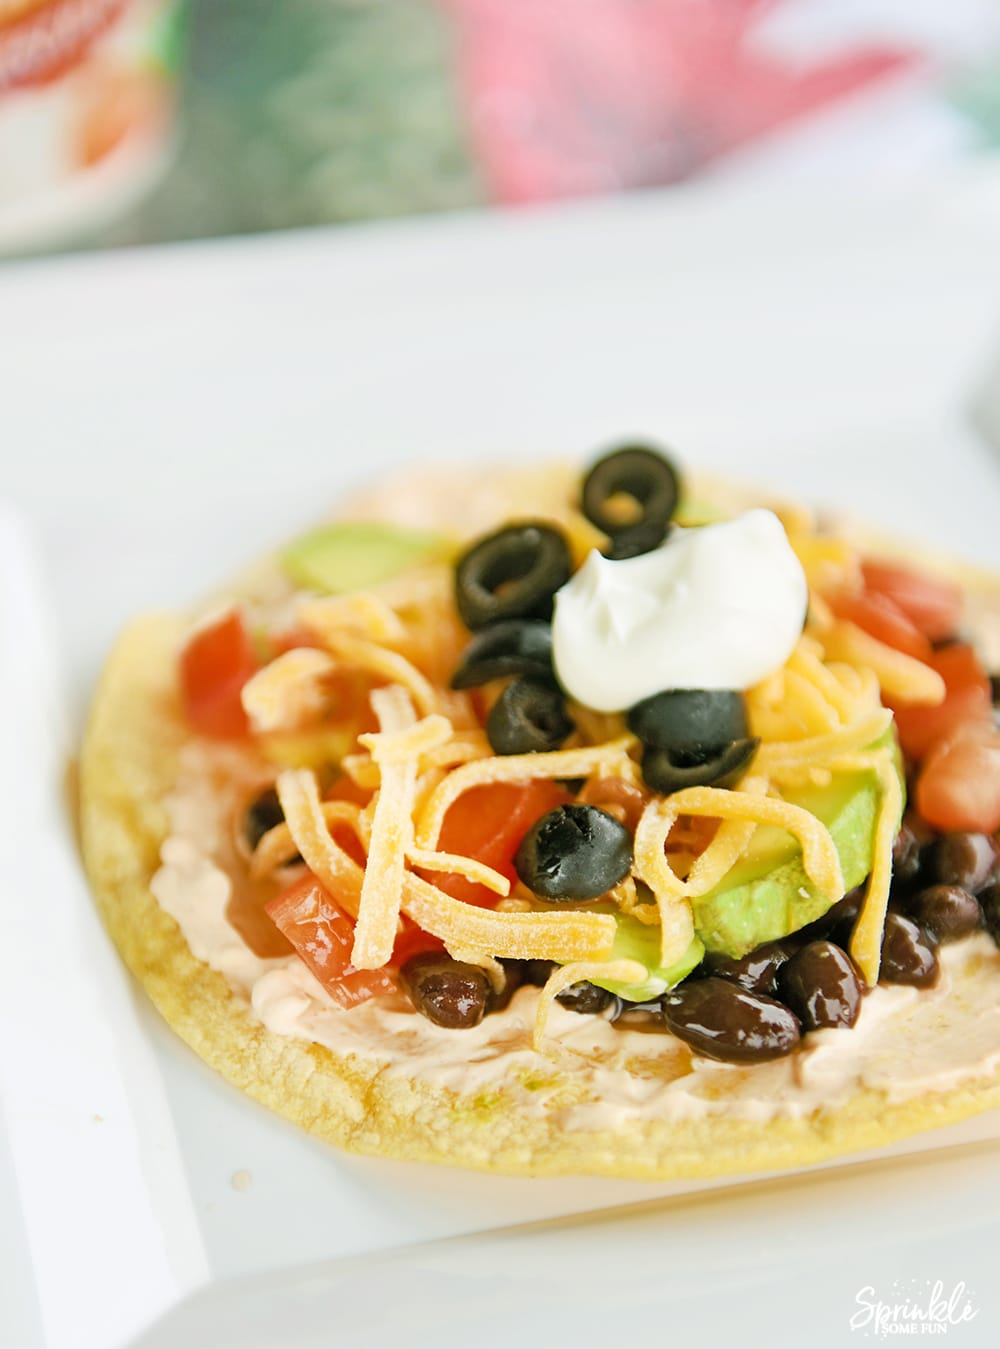 Baked Southwestern Ranch Tostadas - Sprinkle Some Fun